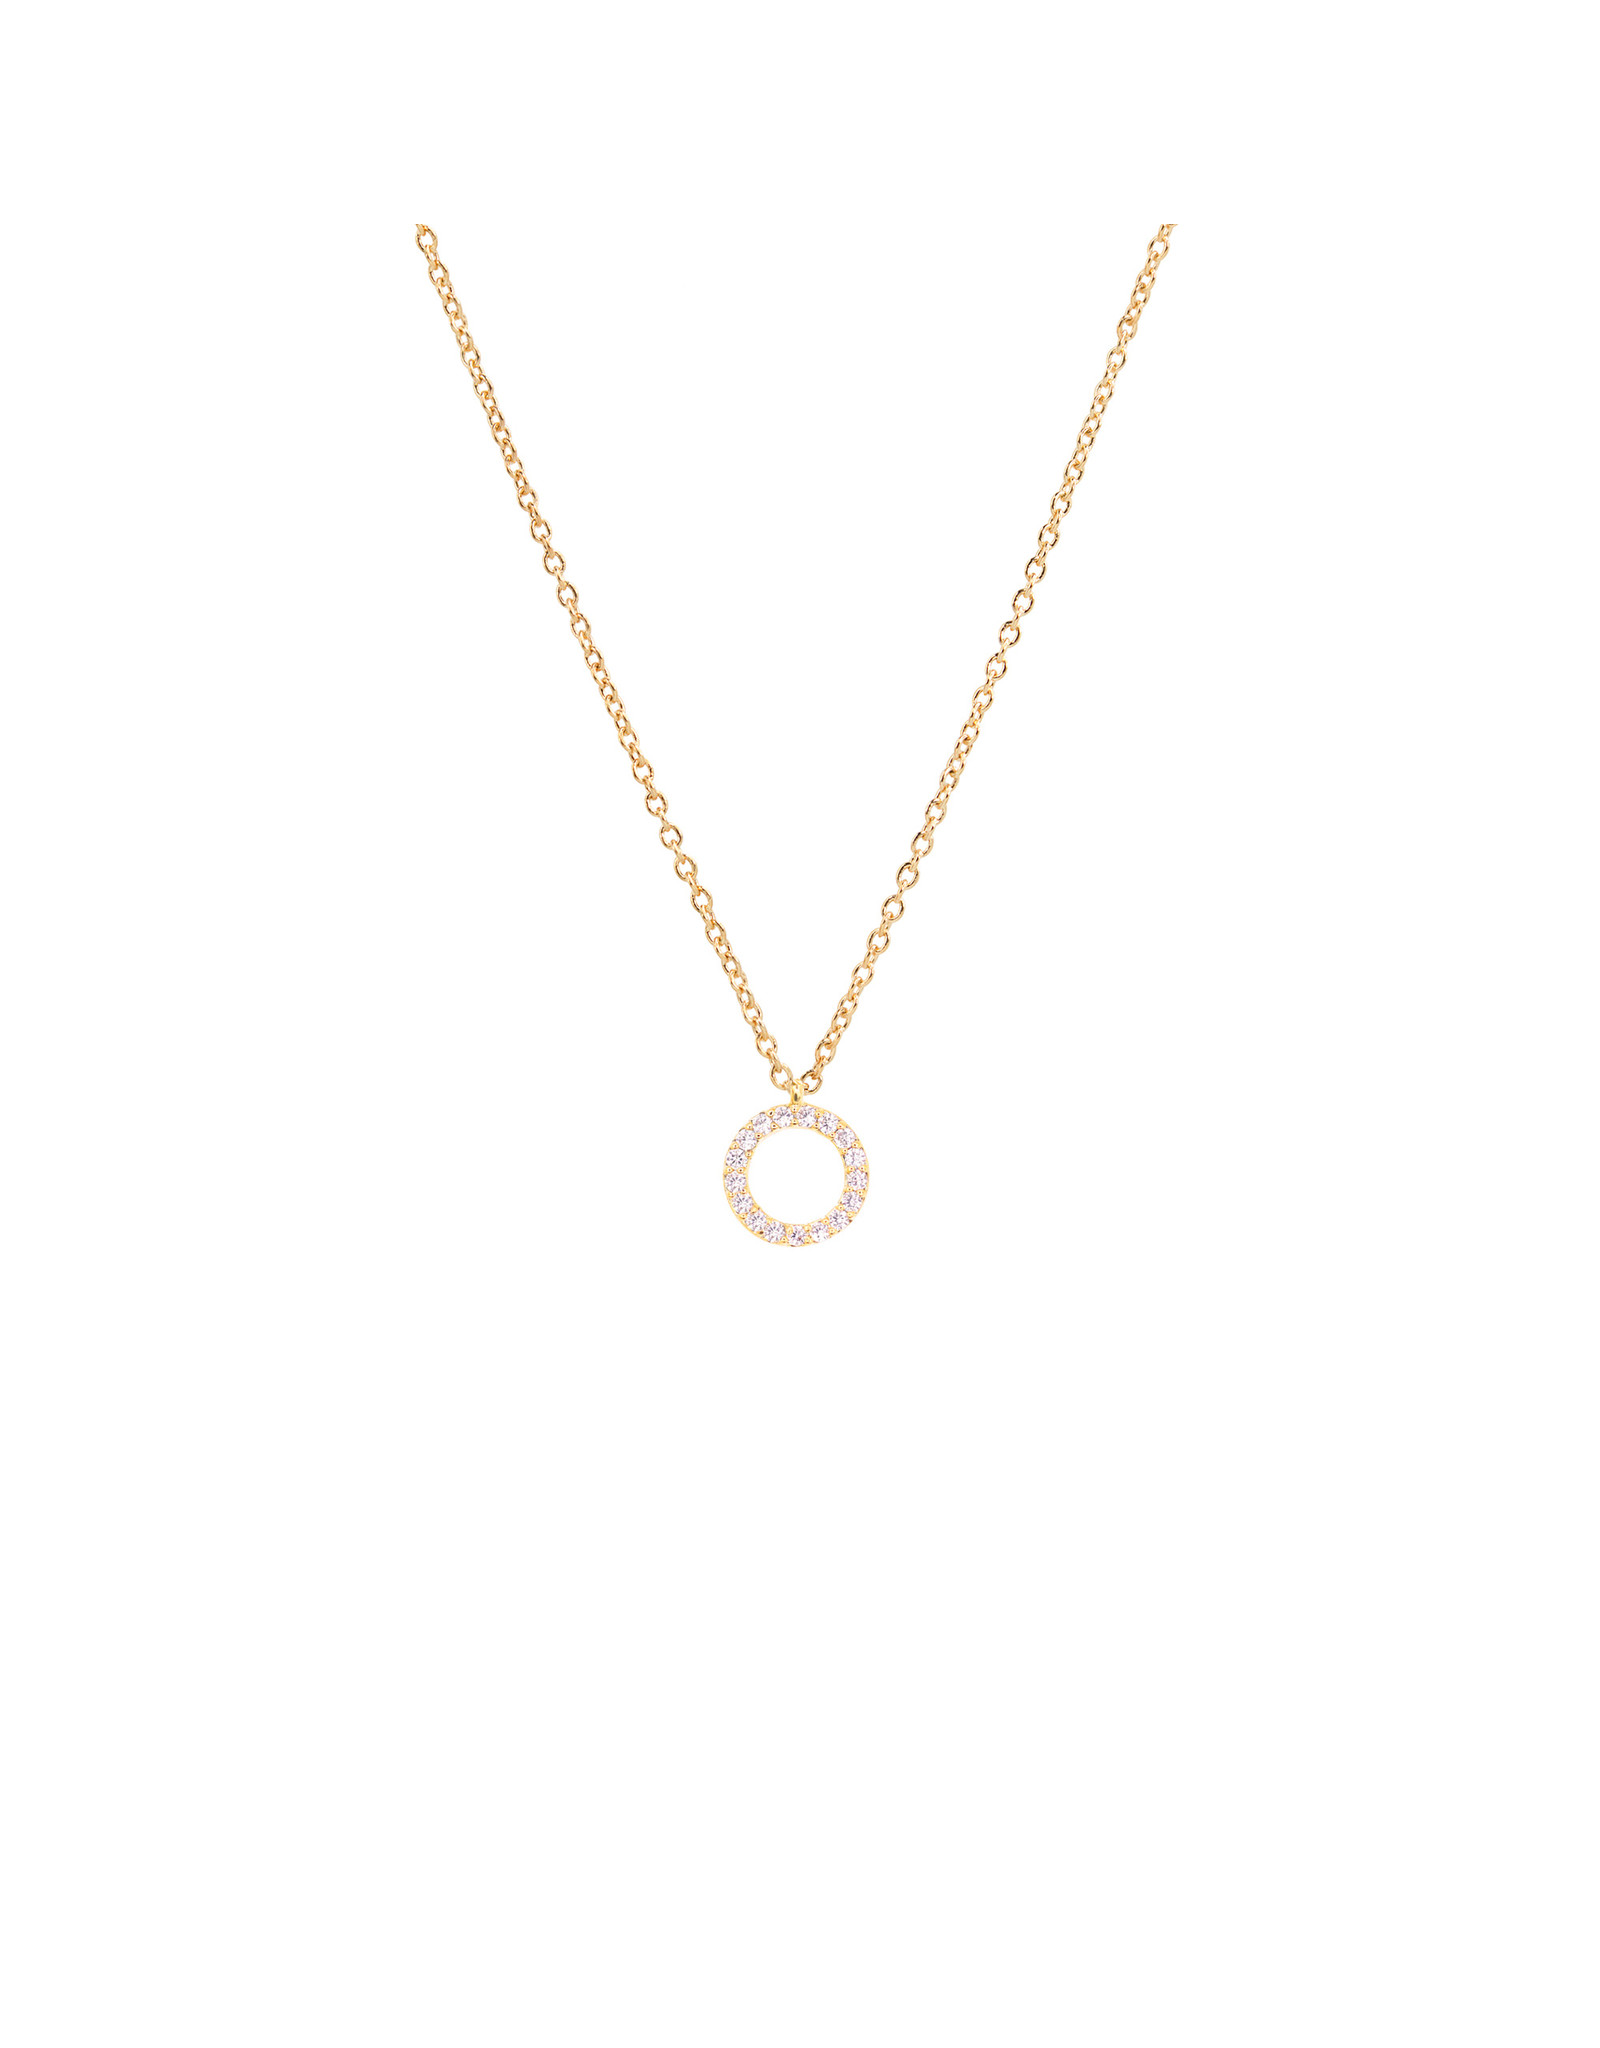 GRIFFIN OPEN CIRCLE NECKLACE